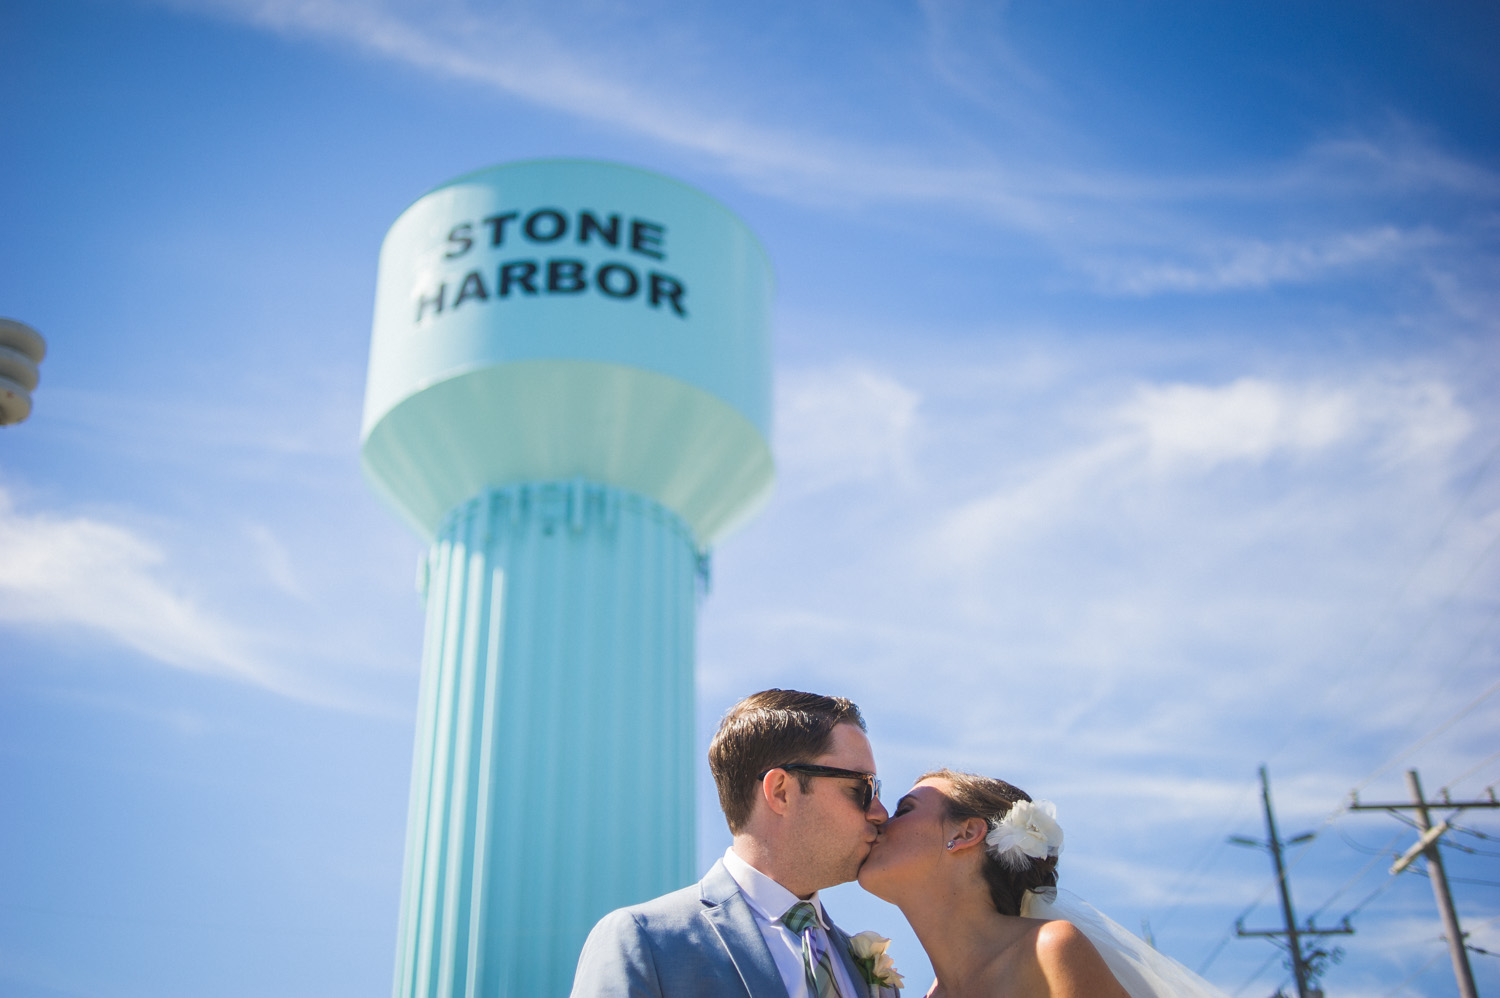 stone-harbor-wedding-photography-1 (24).jpg